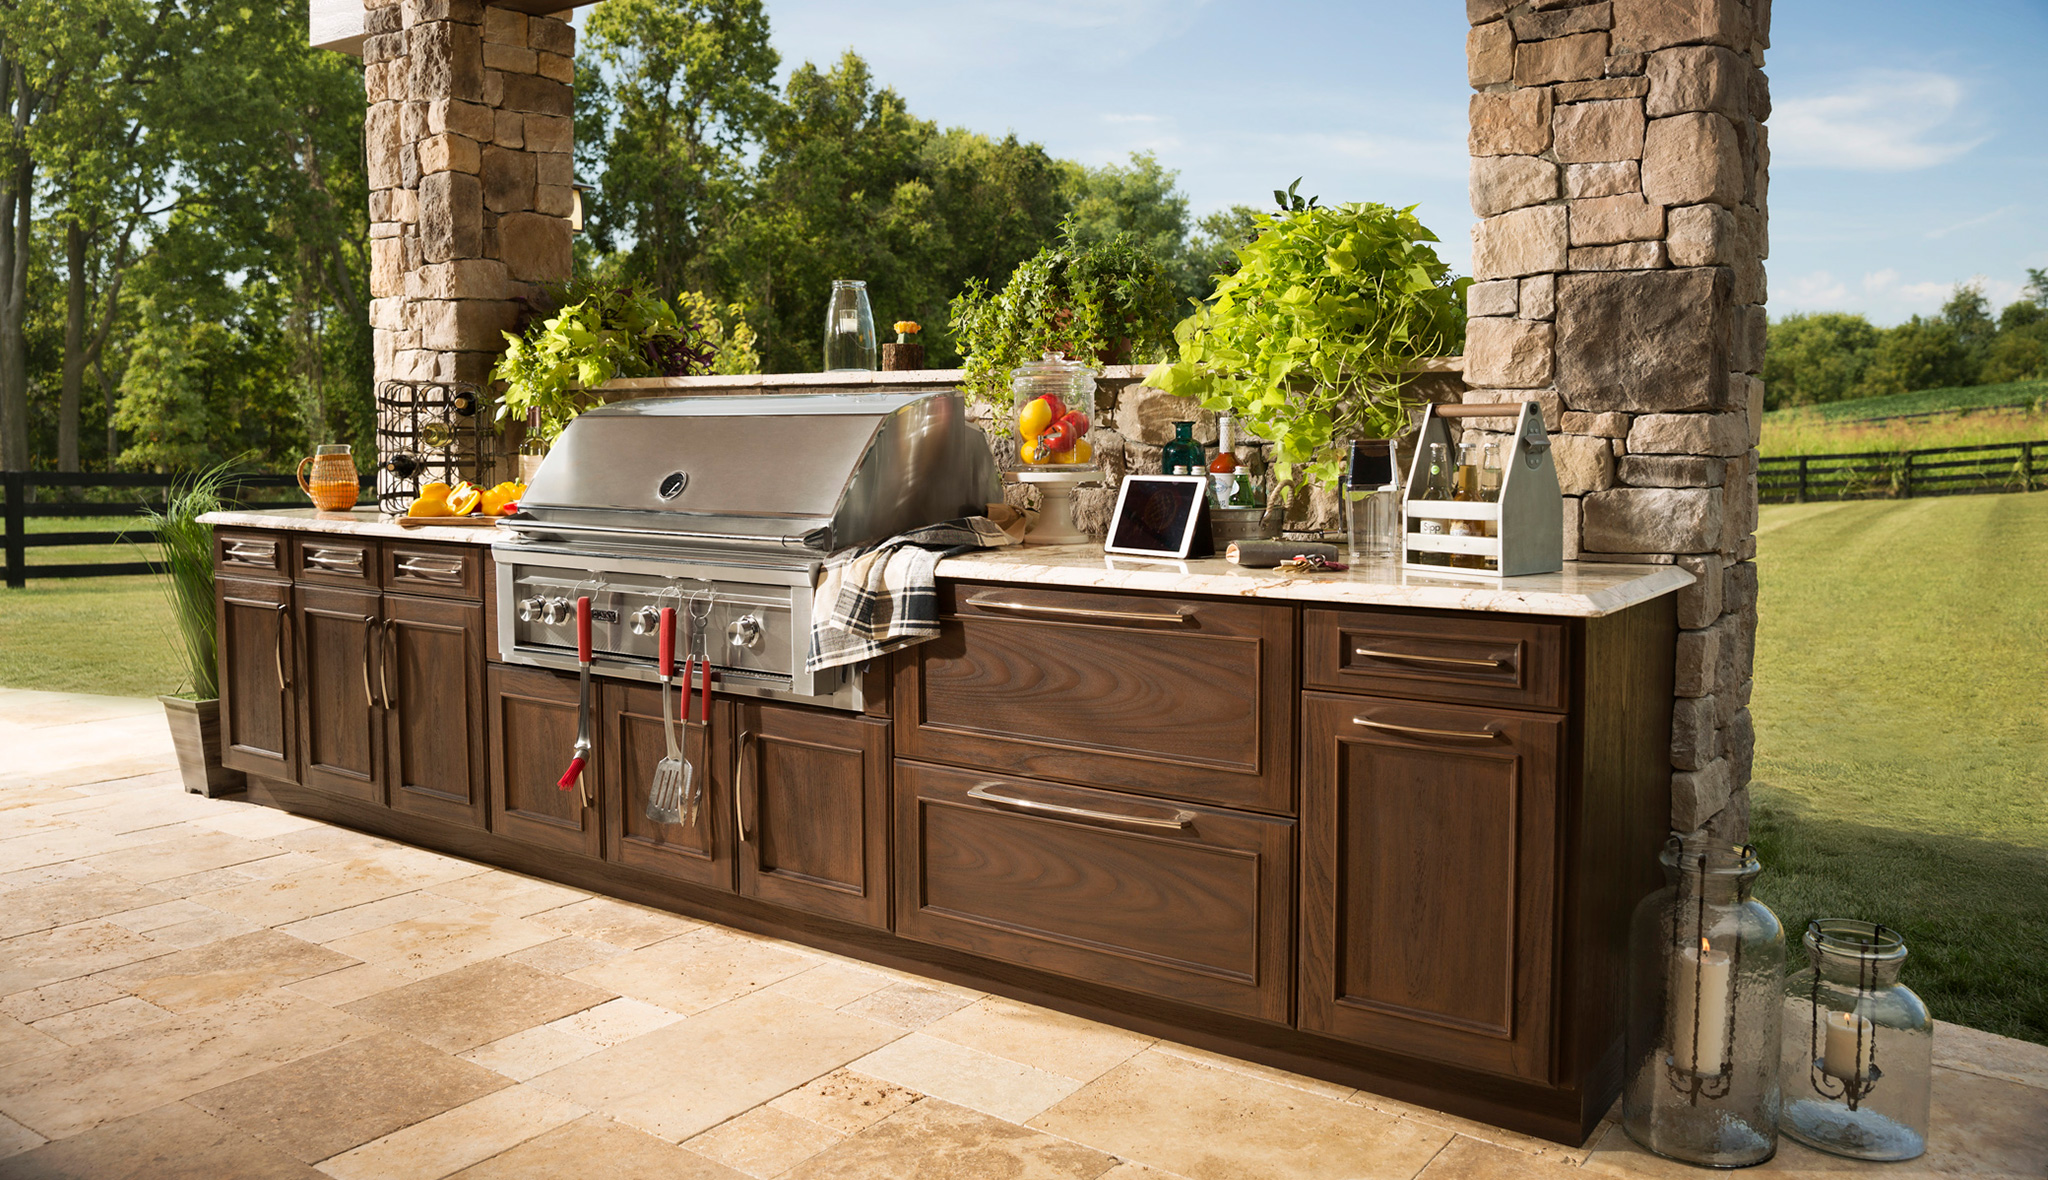 TREX outdoor kitchen cabinets